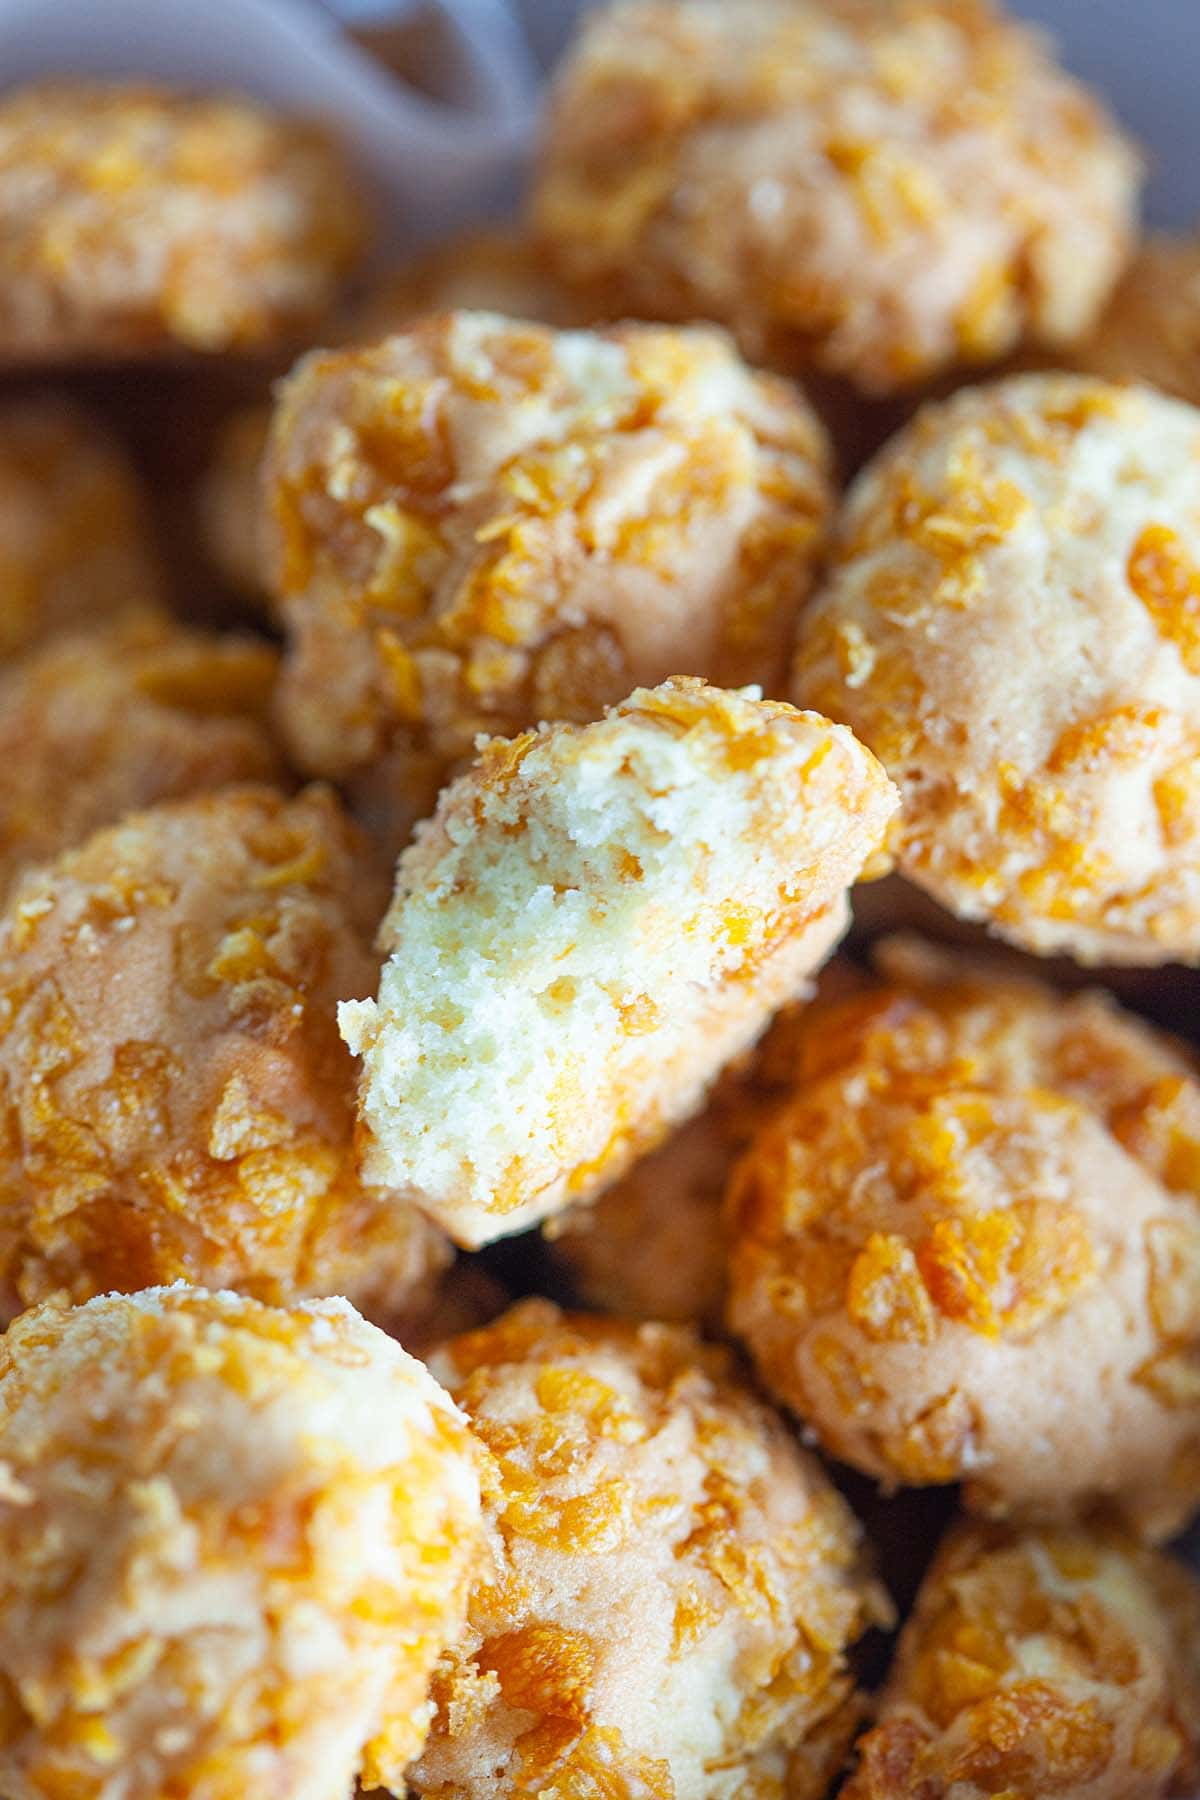 Butter-rich cookies rolled with crunchy cornflakes.